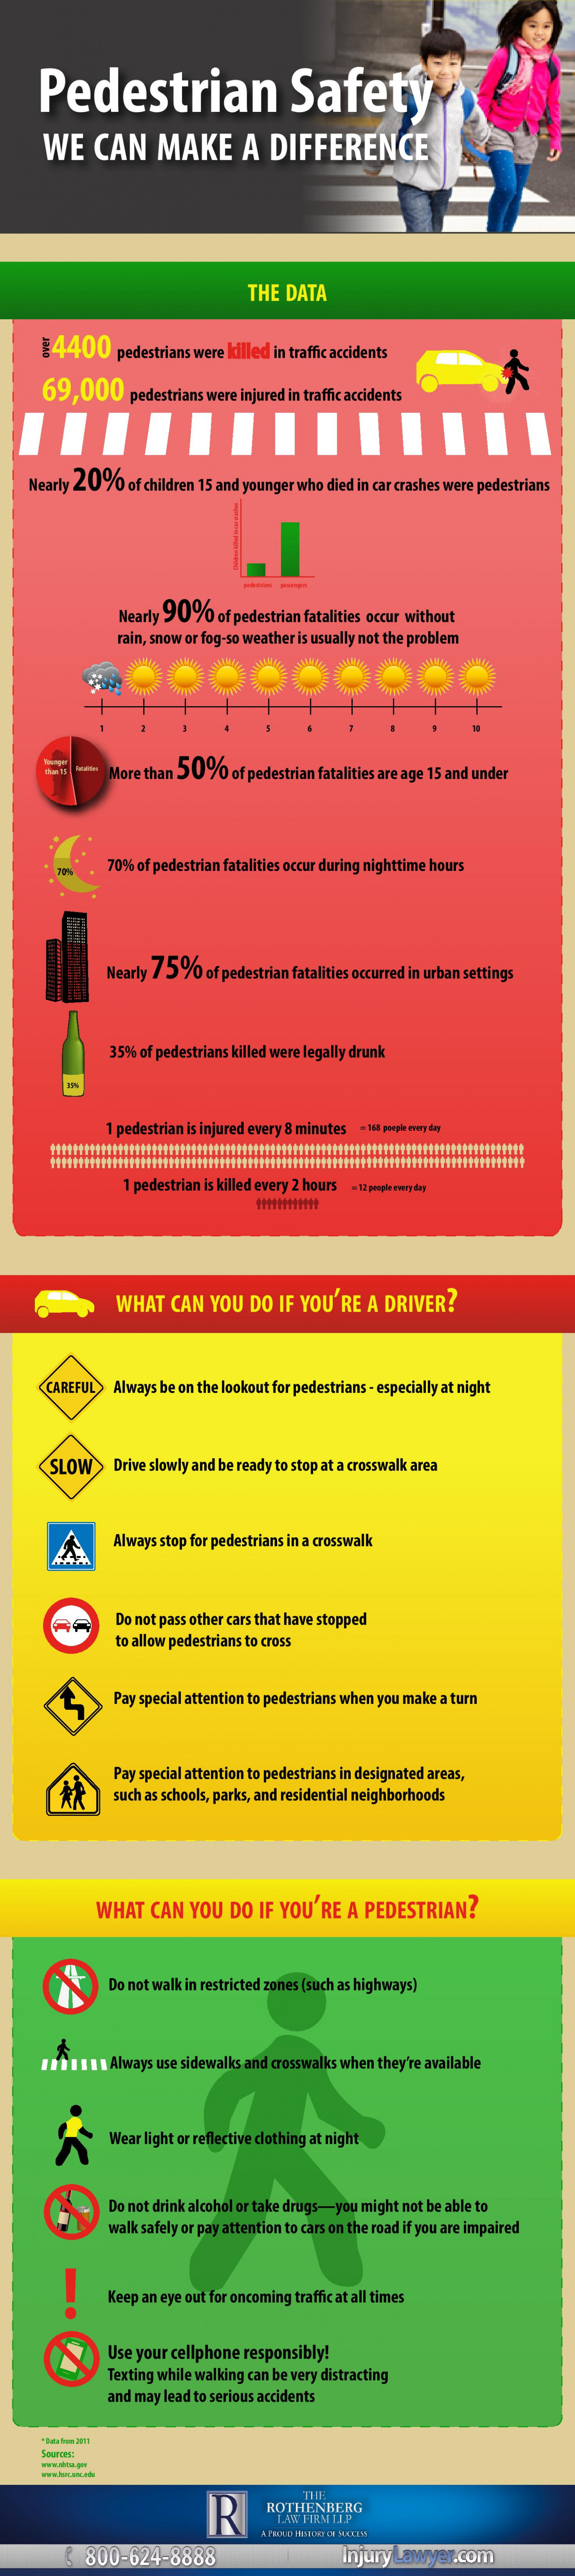 Pedestrian Safety Infographic